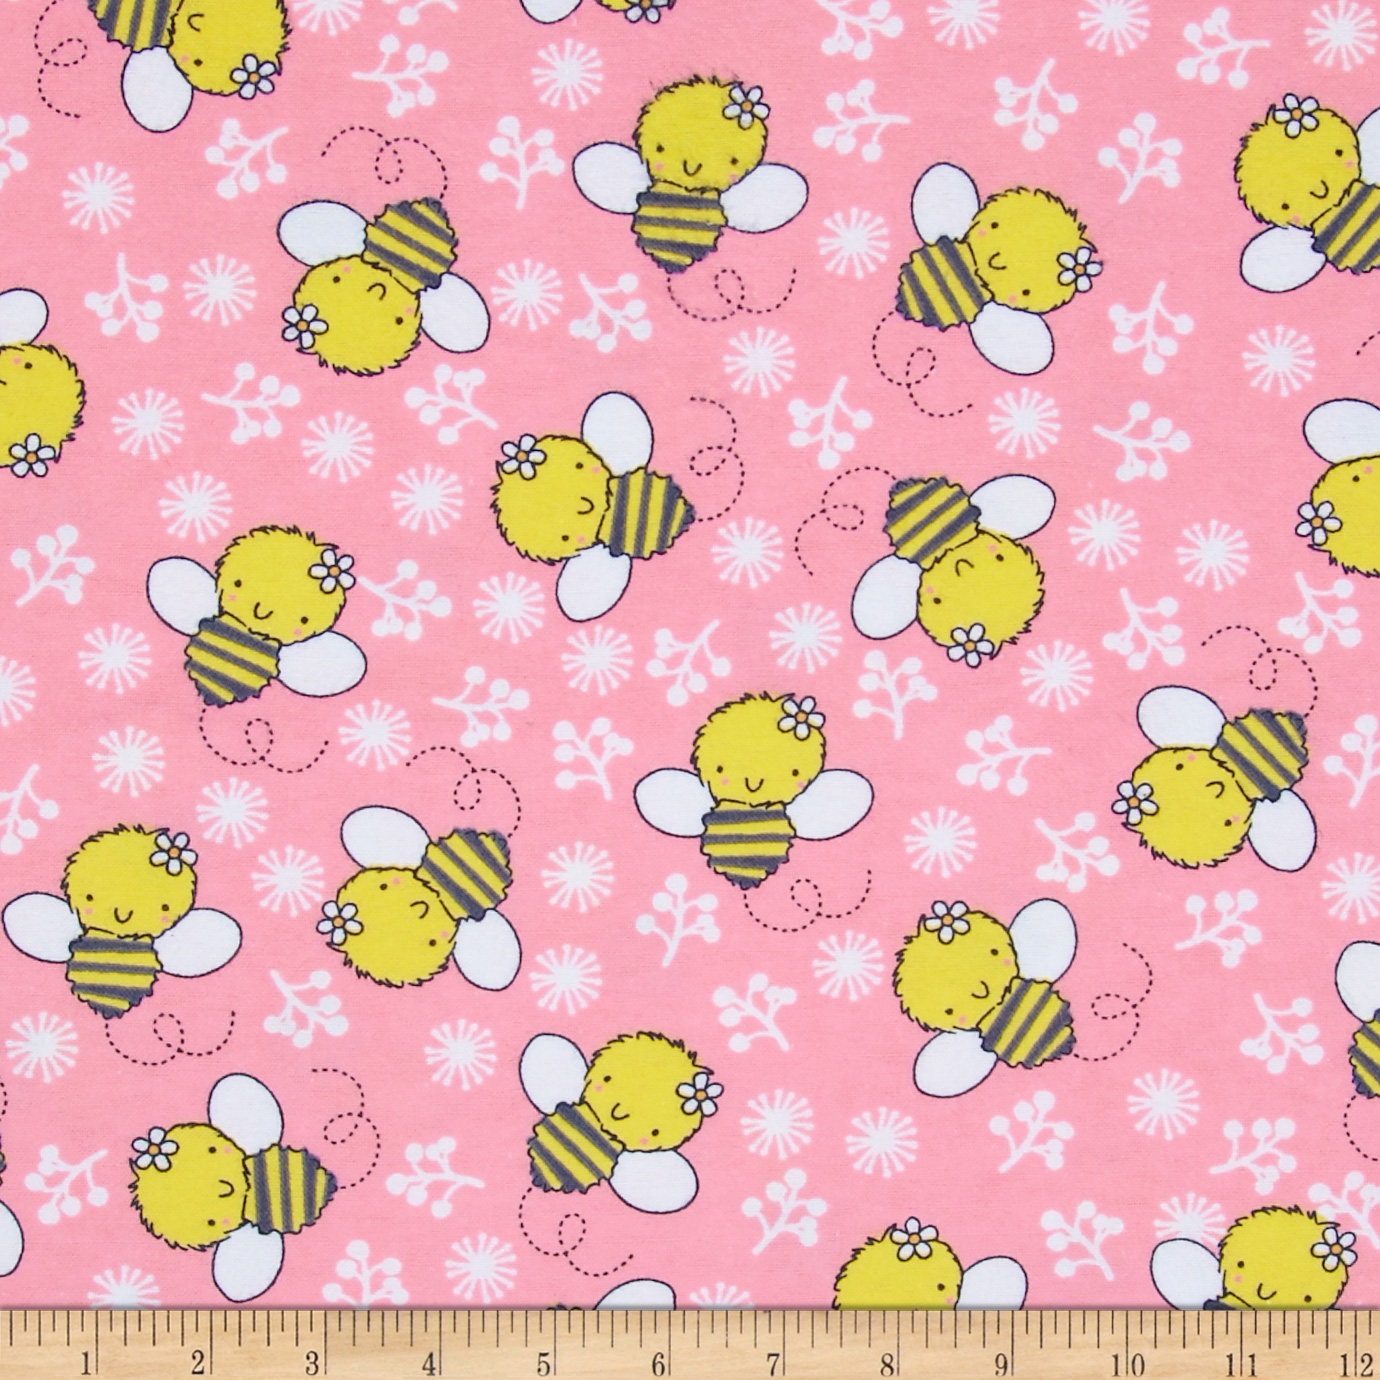 Flannel Tossed Bee Candy Pink Fabric